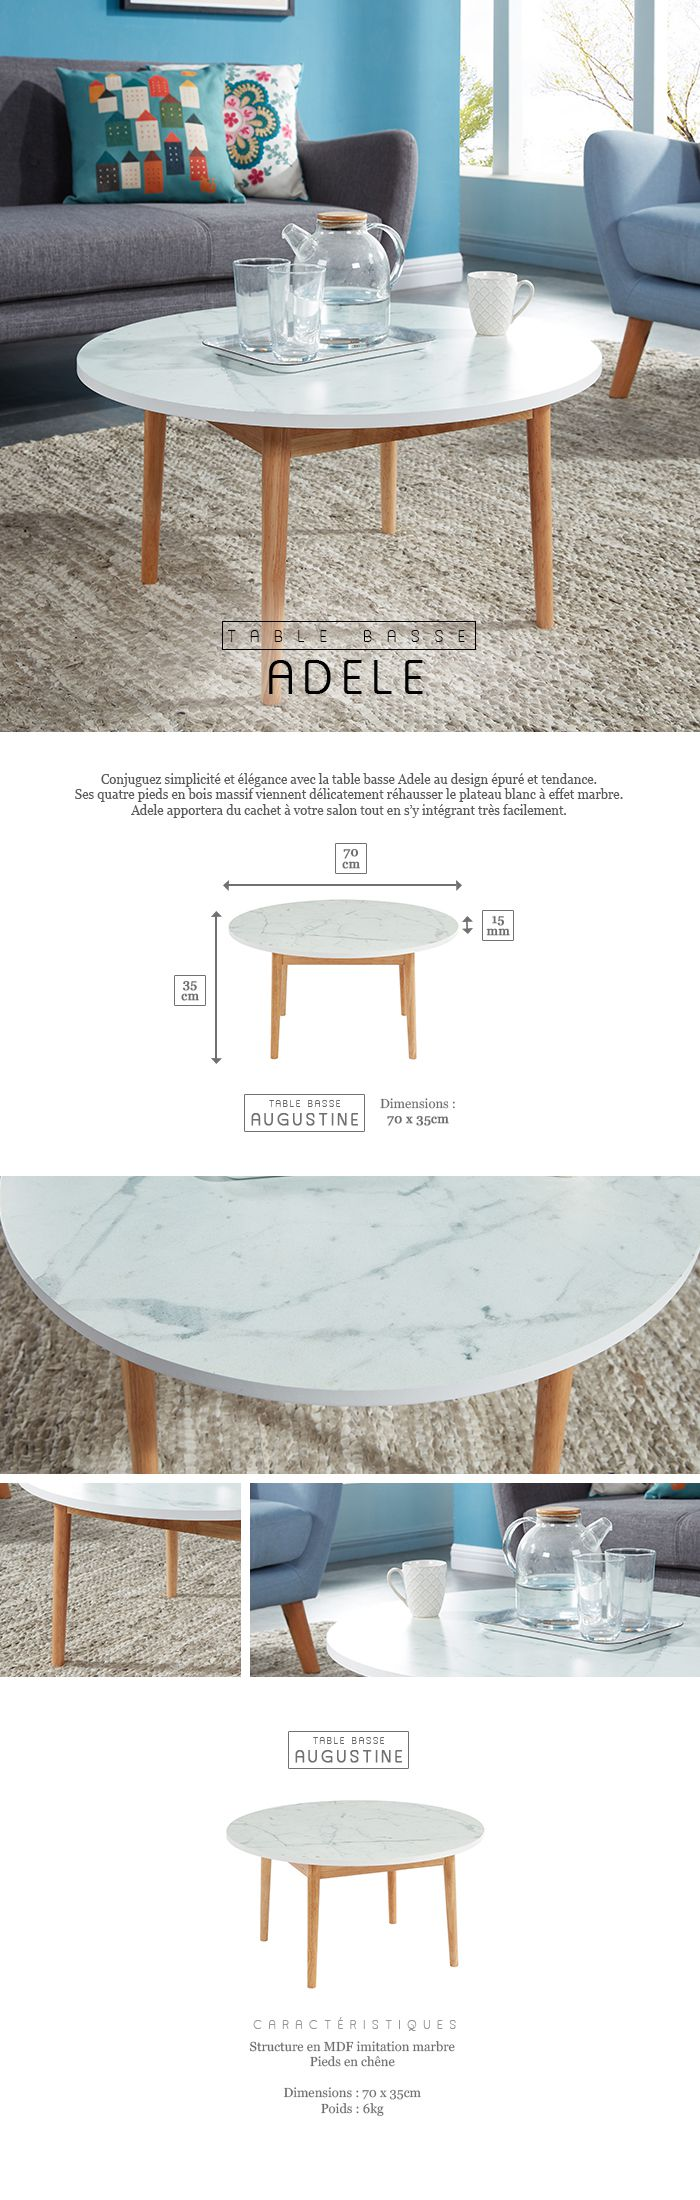 Adele Table Basse Ronde 70x70 Cm Marbre Achat Vente